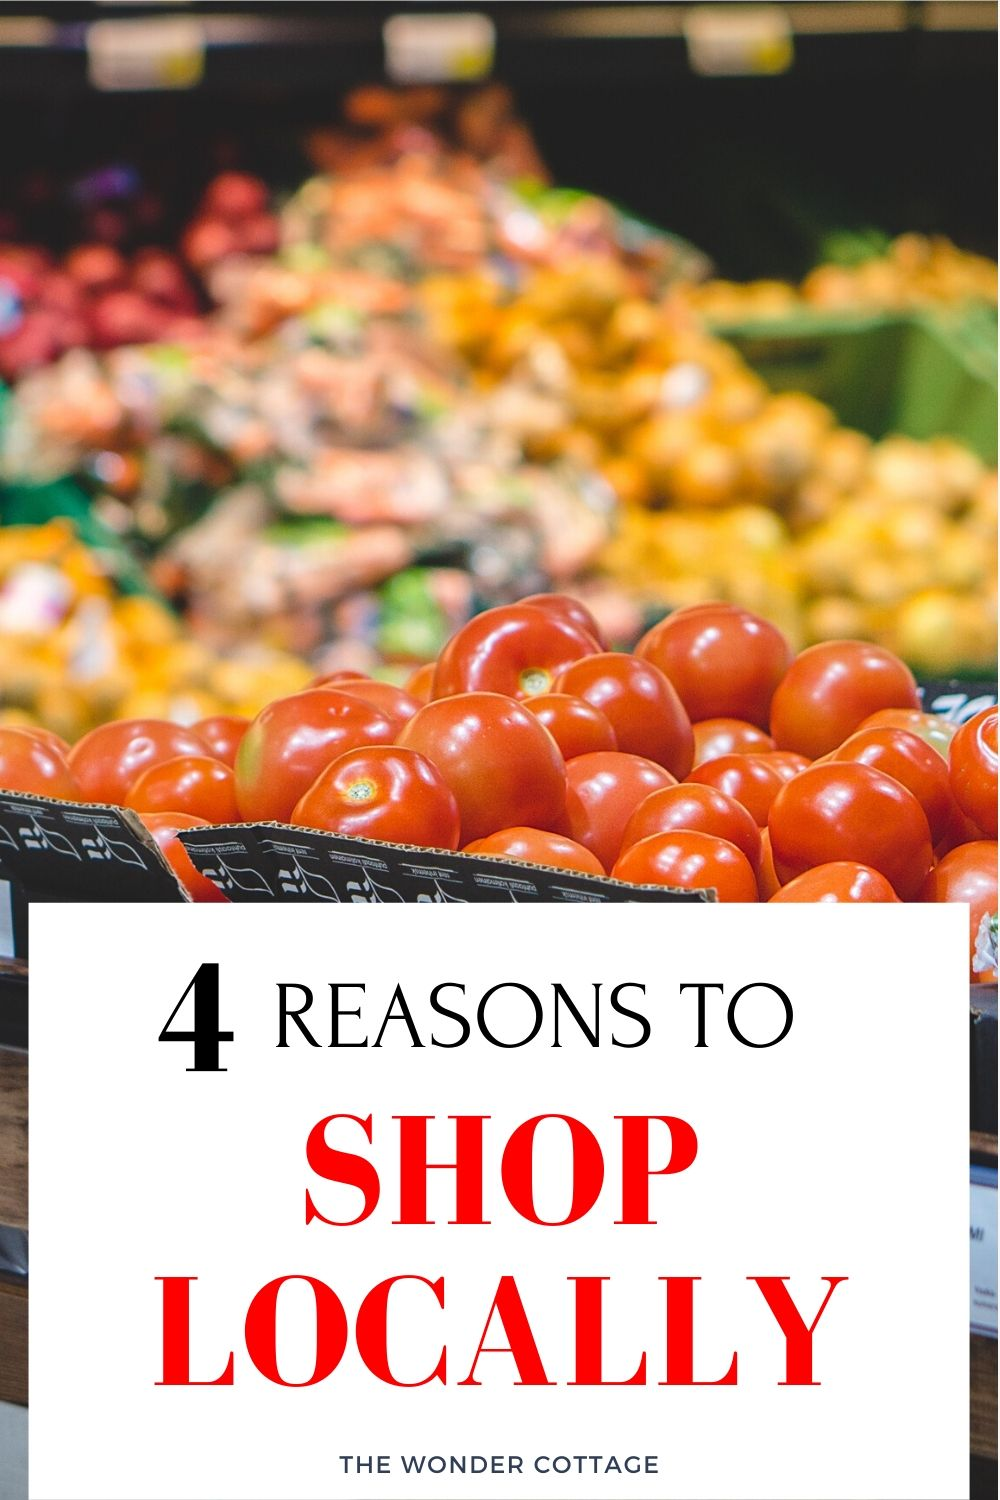 4 reasons to shop locally